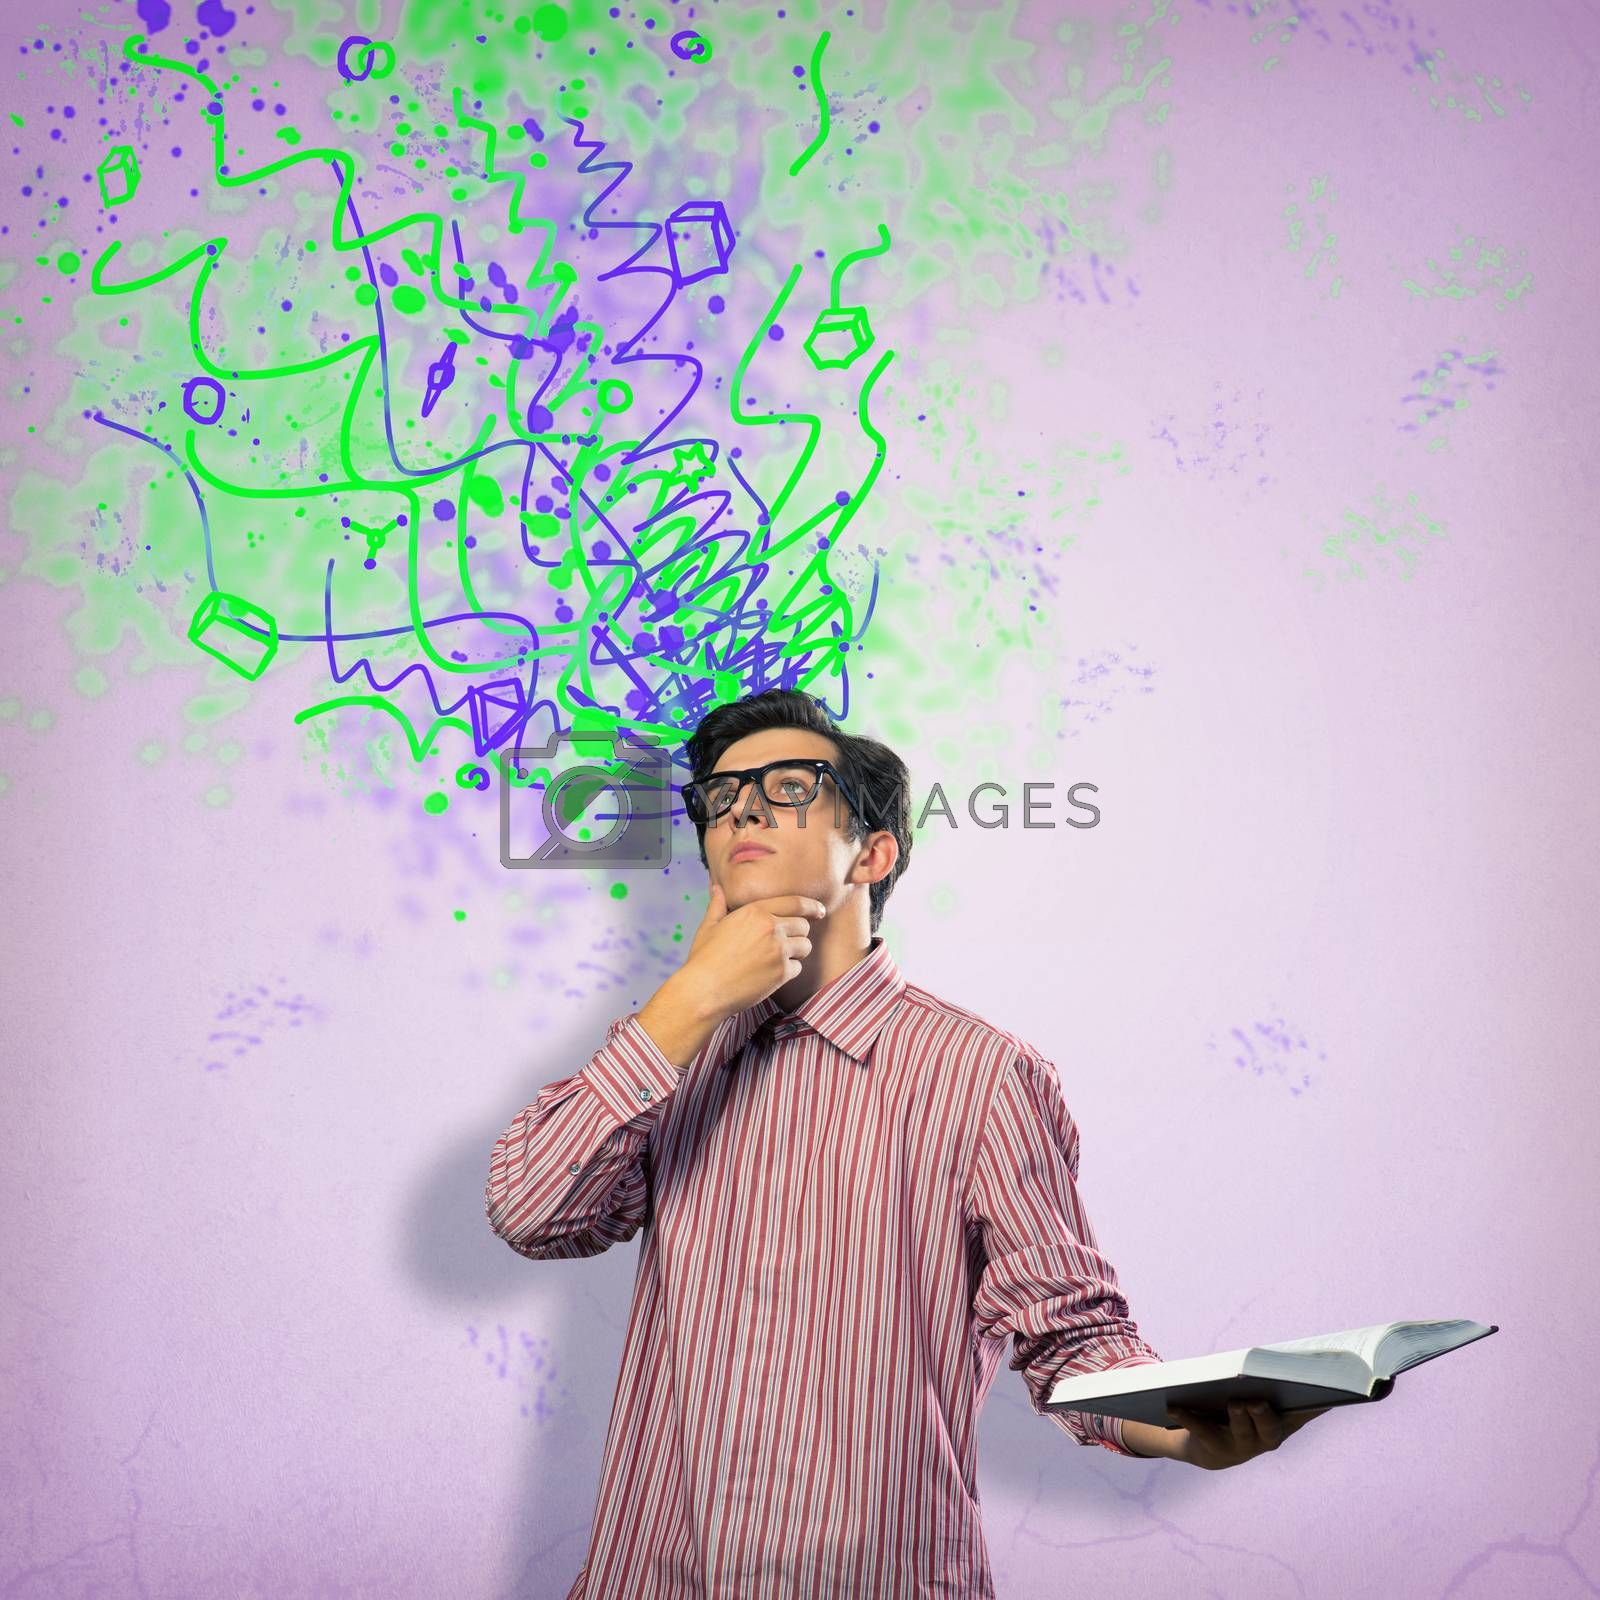 Royalty free image of creative mind by adam121